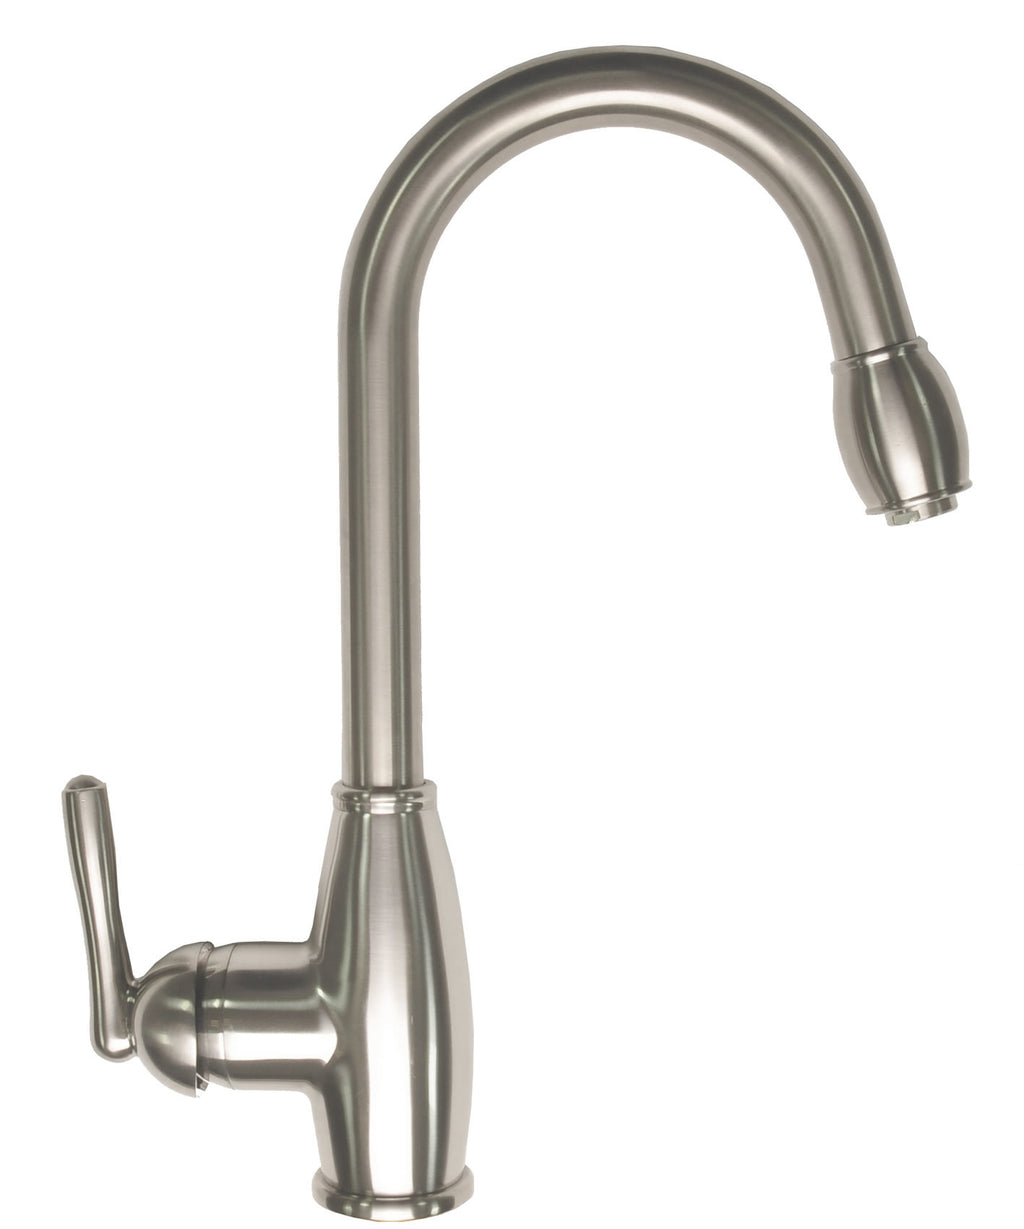 Zenvida Single Handle Pull Down Kitchen Faucet Brushed Nickel